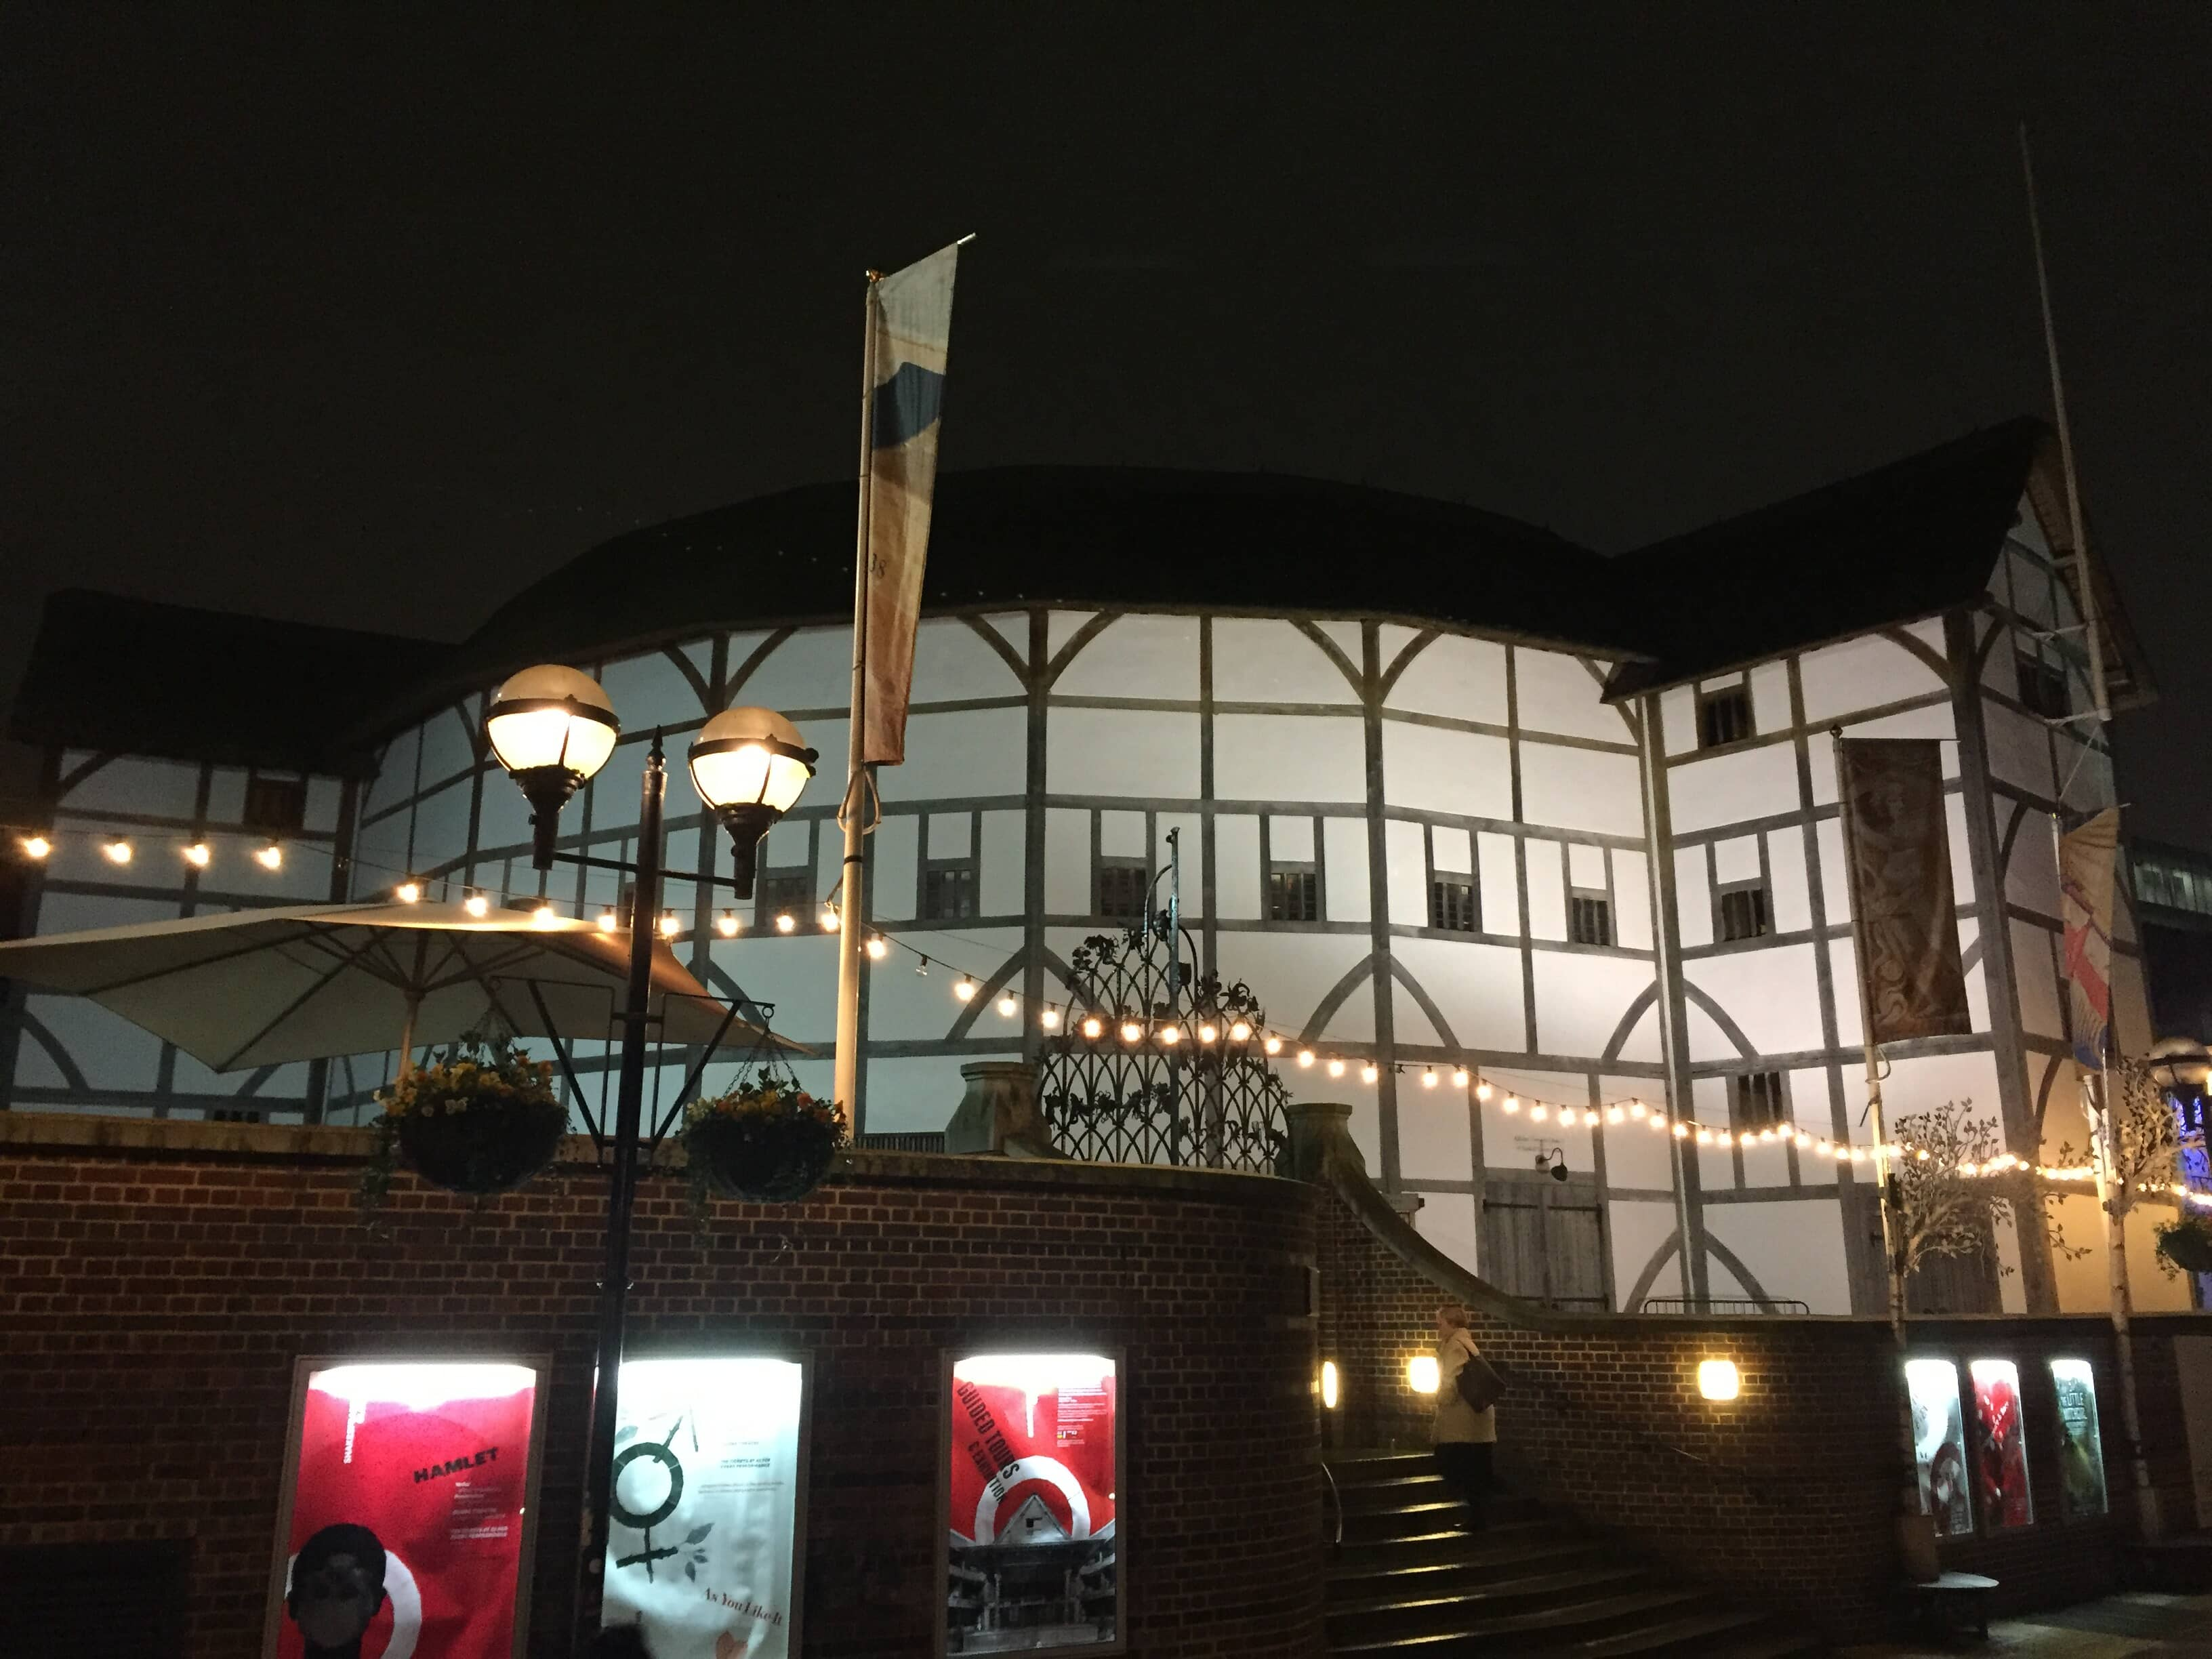 The Globe Theatre at night